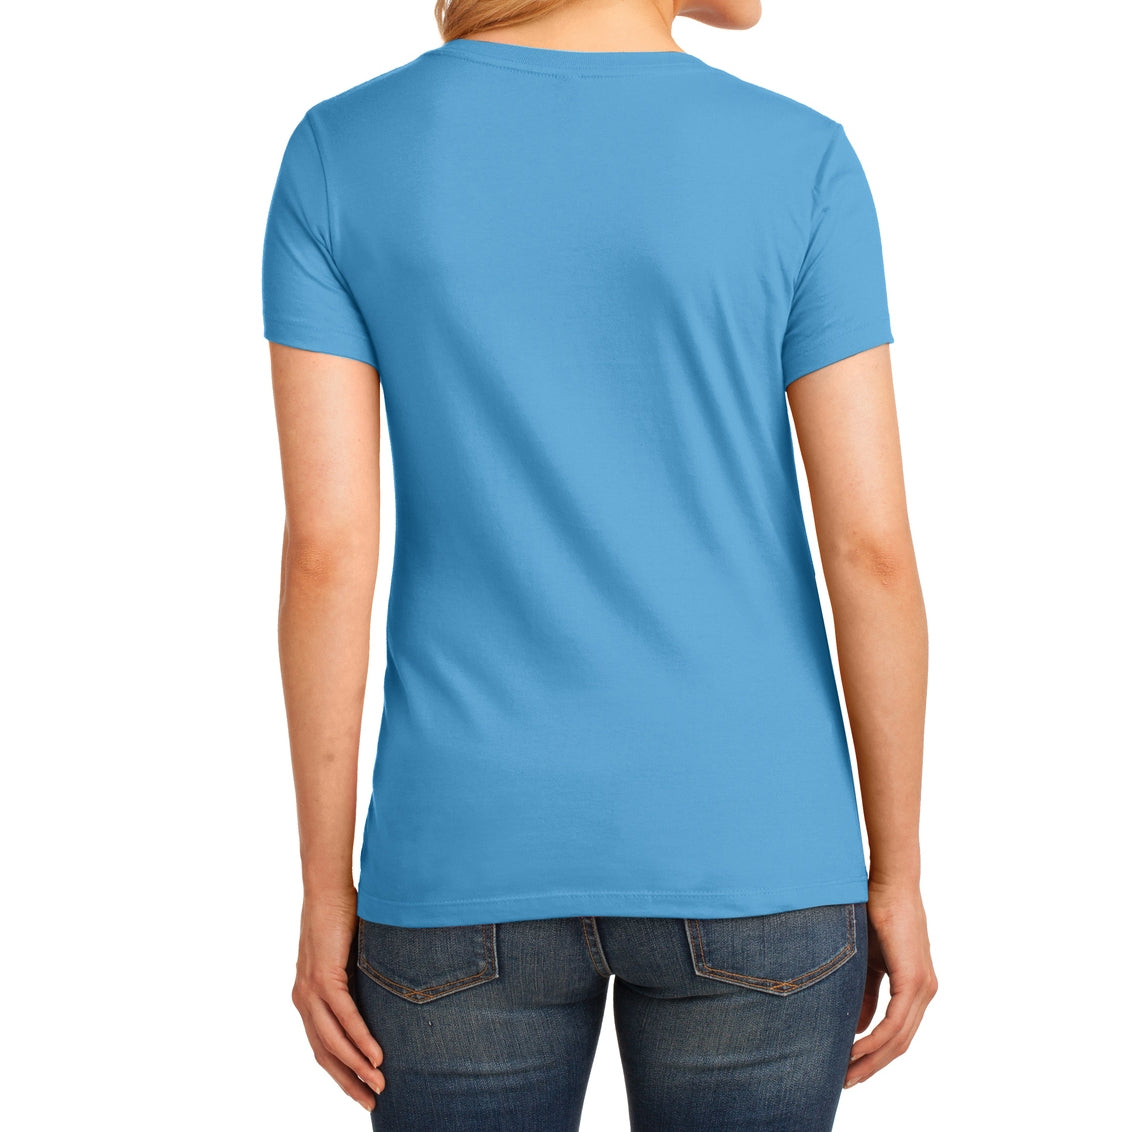 Women's Core Cotton V-Neck Tee Aquatic Blue - Back